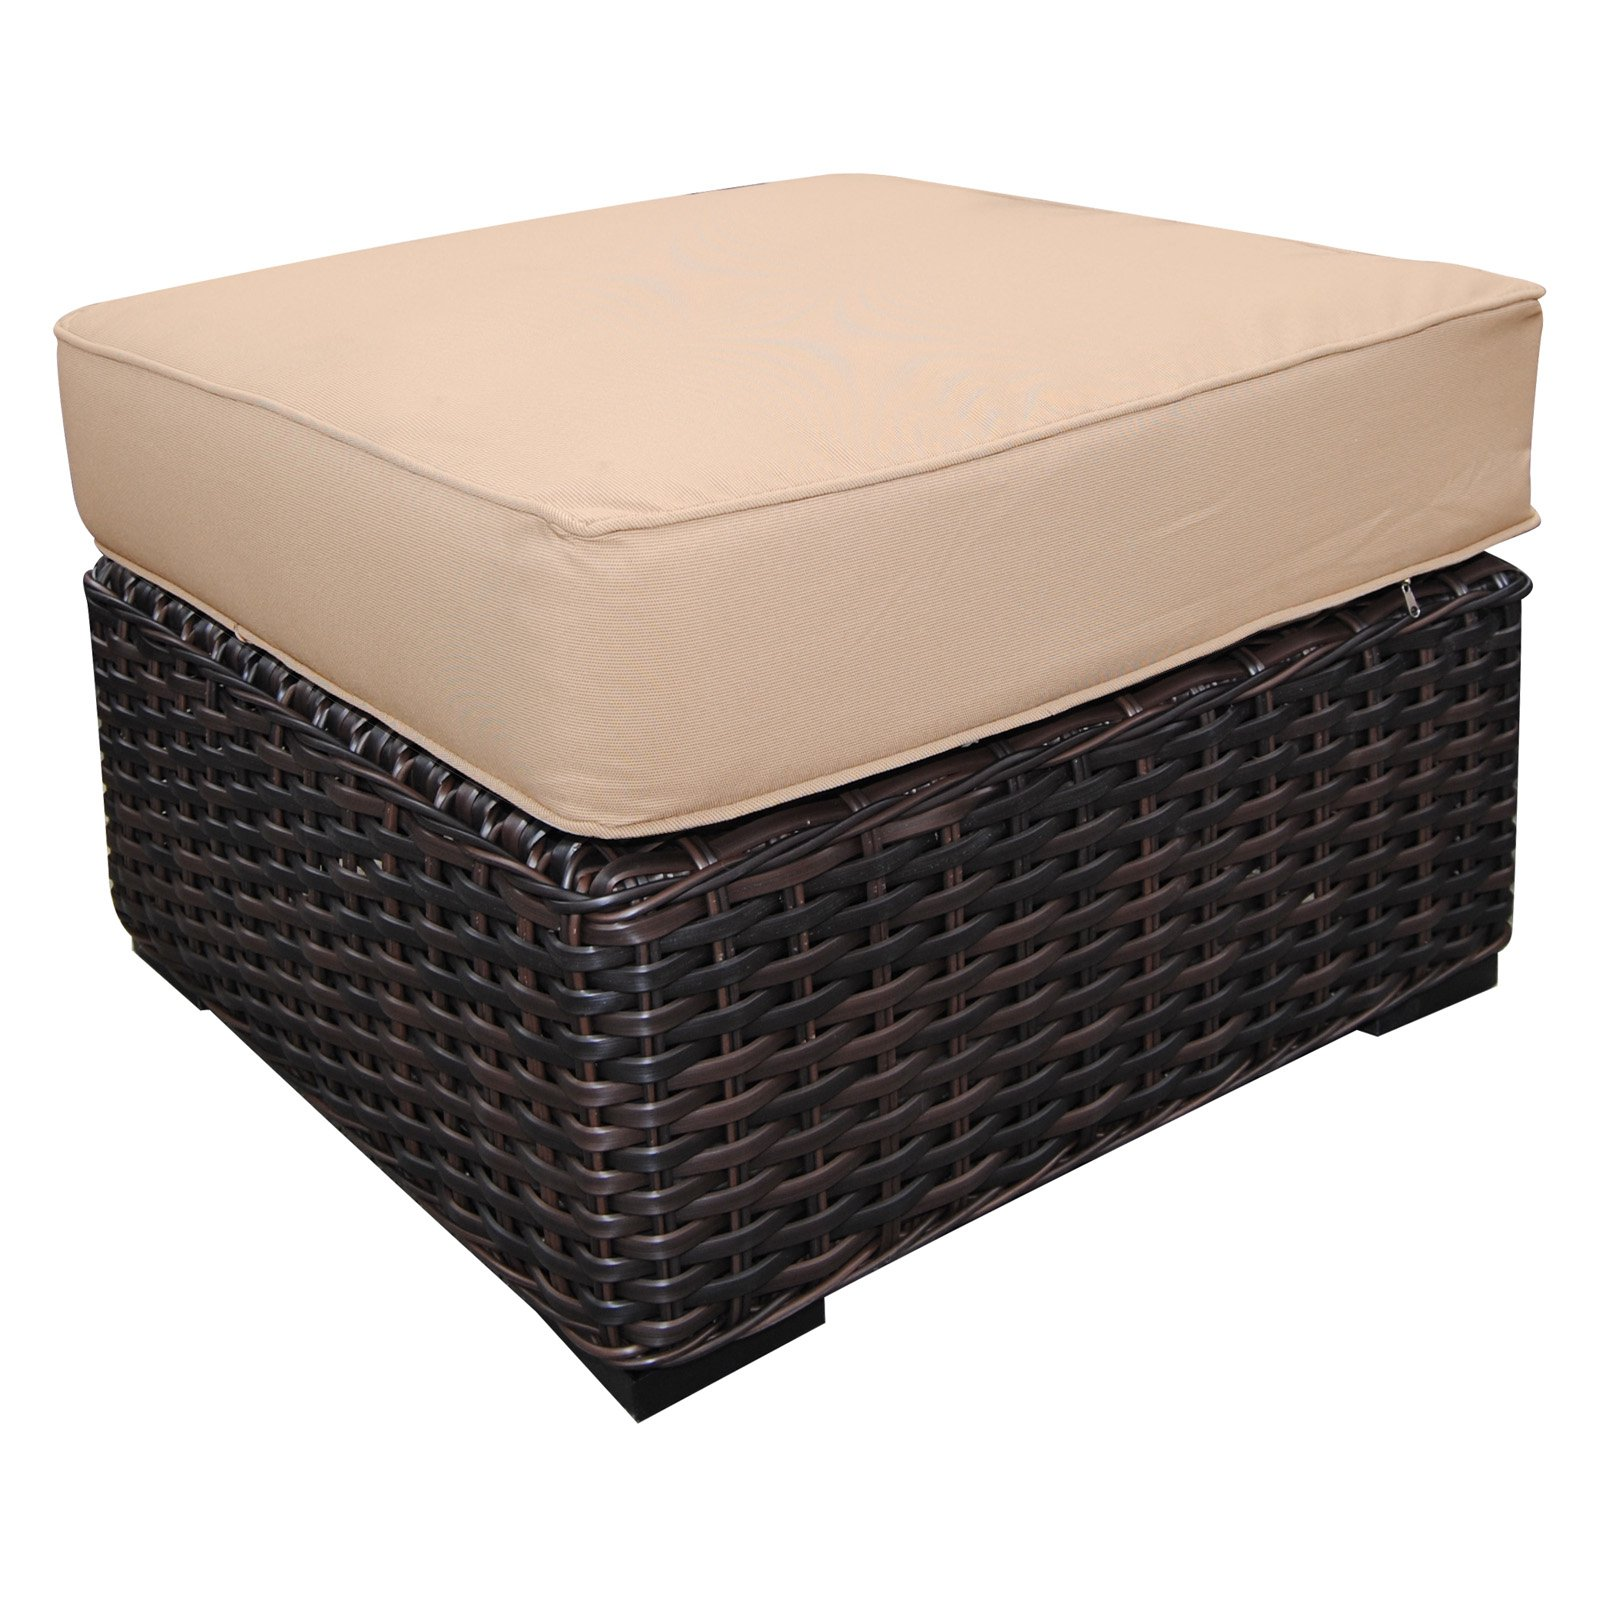 Teva Patio Santa Monica Wicker Rattan Patio Ottoman